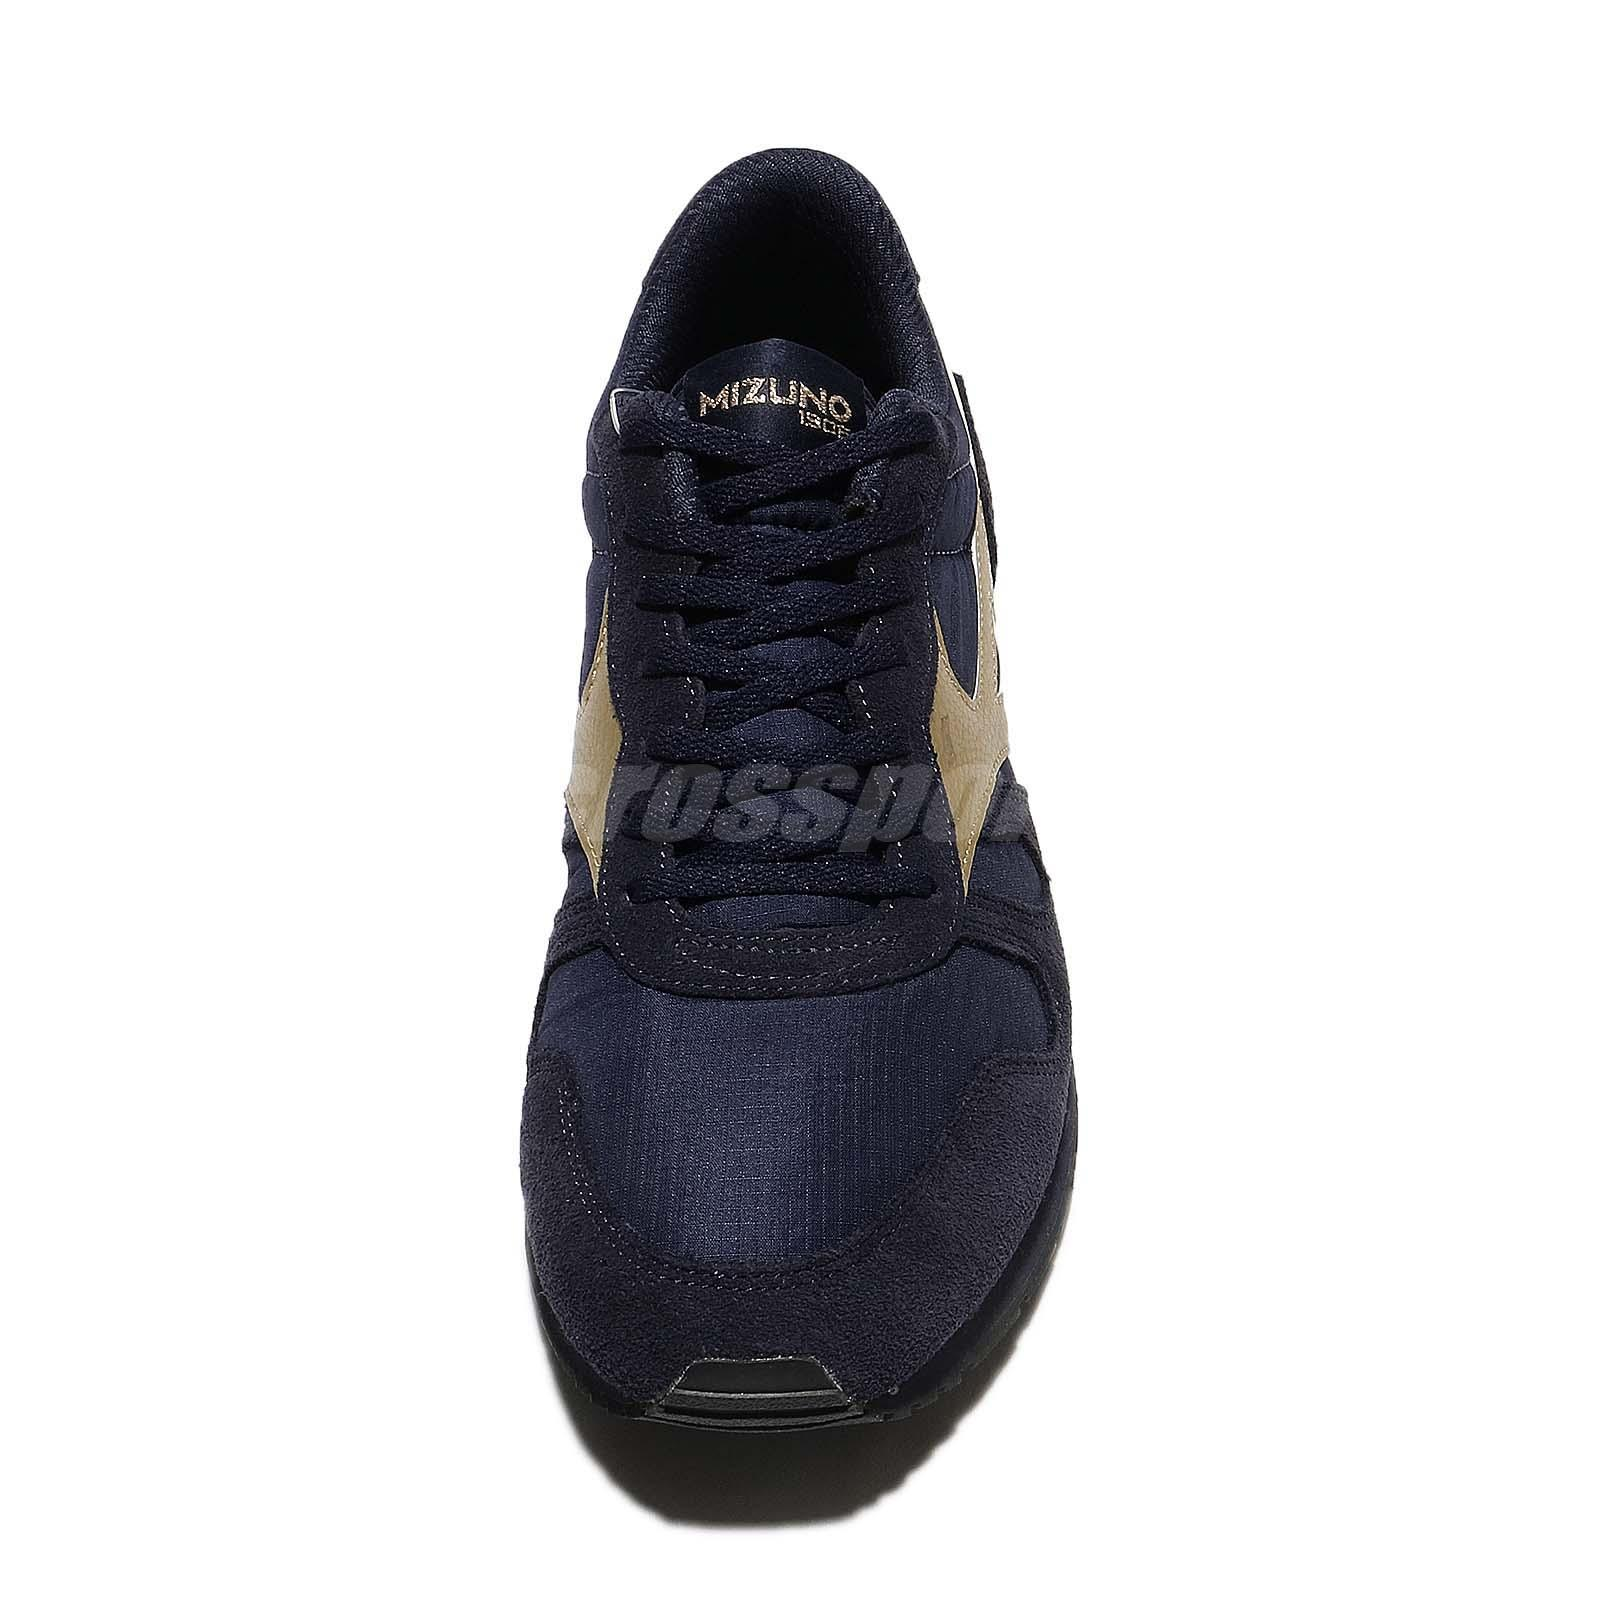 Mizuno Mizuno ML87 Navy Gold Men Lifestyle Running Shoes Sneakers D1GA1702-14 qkdPE